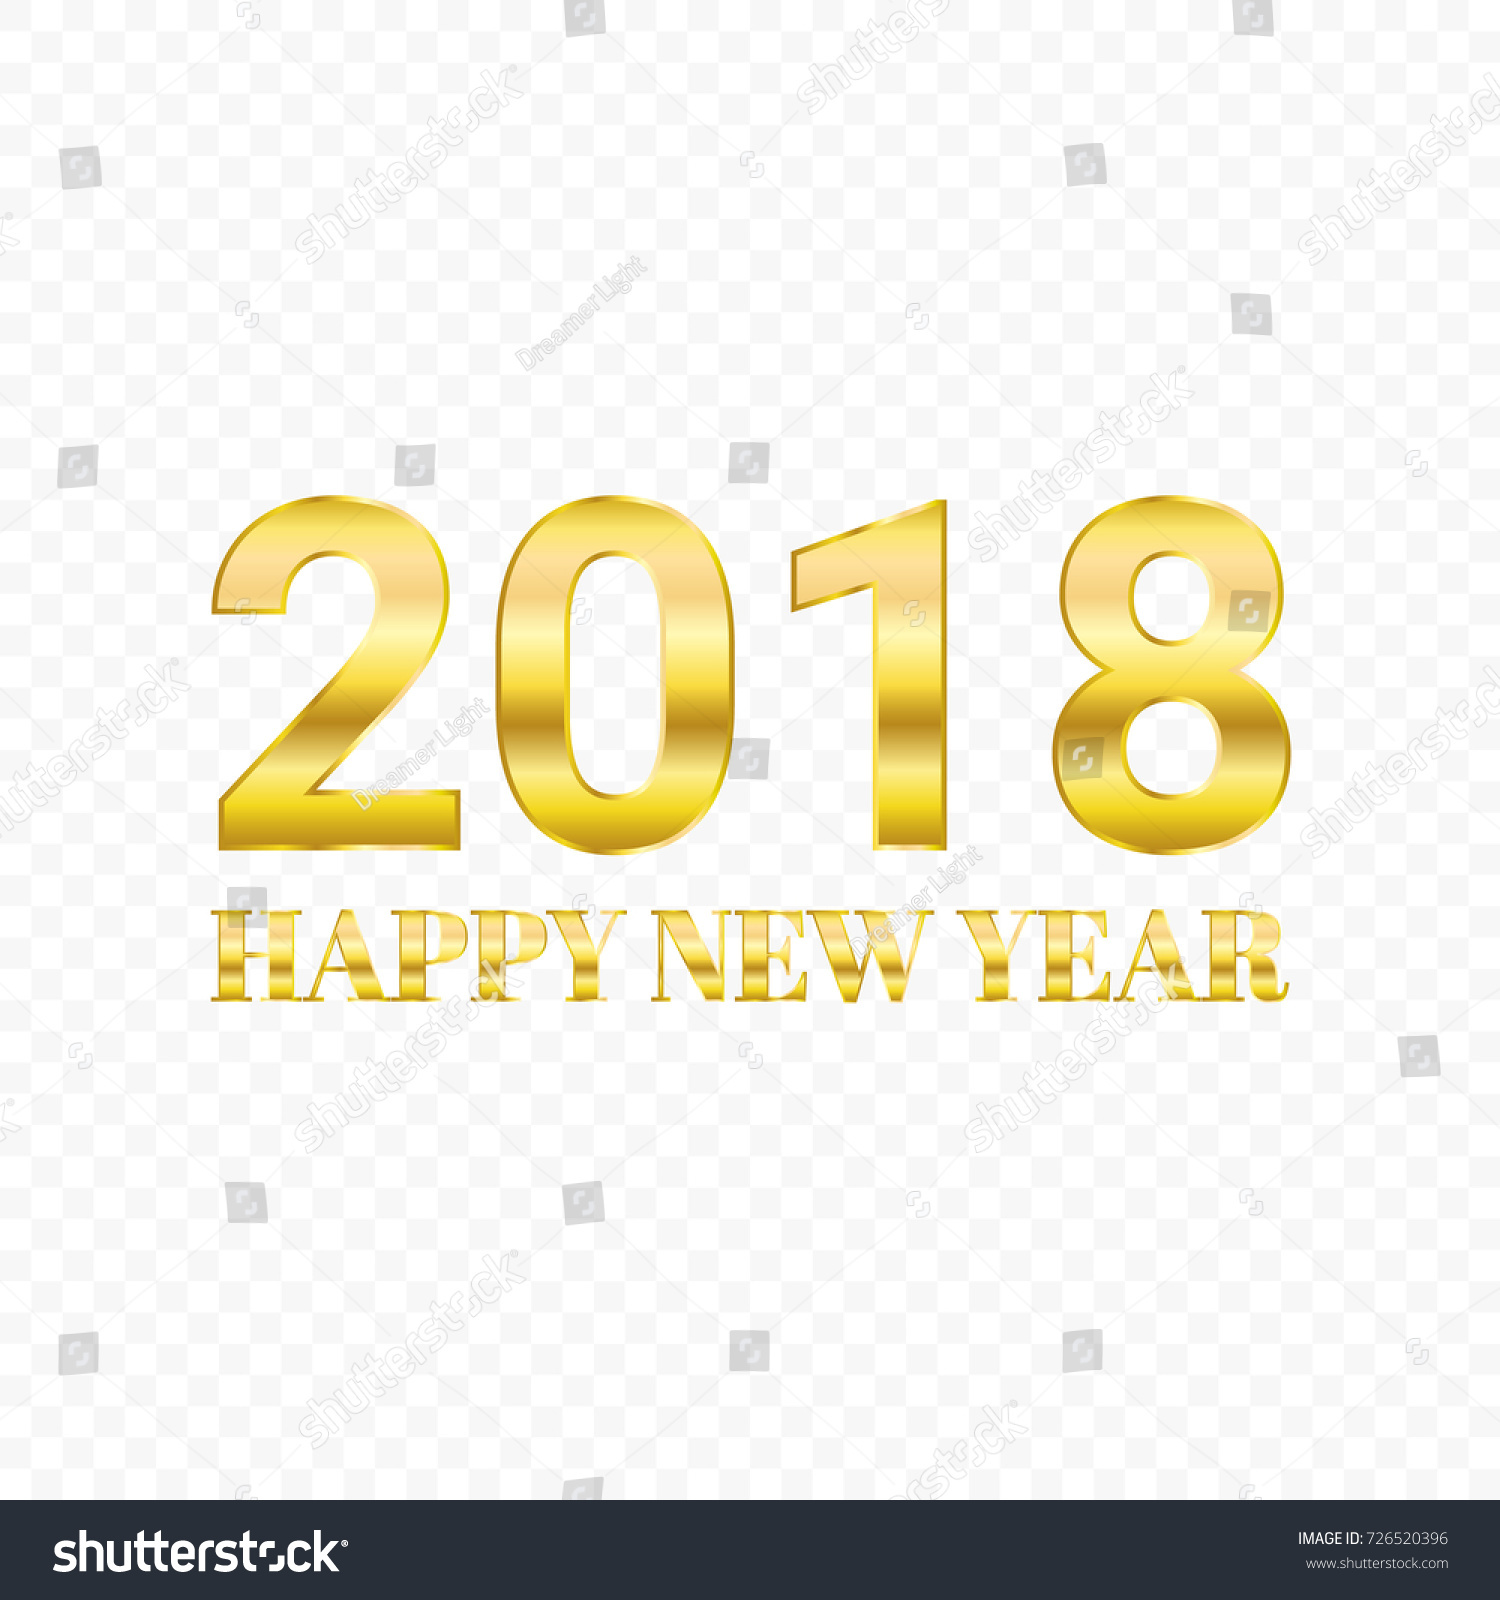 golden happy new year 2018 isolated on transparent background vector illustration